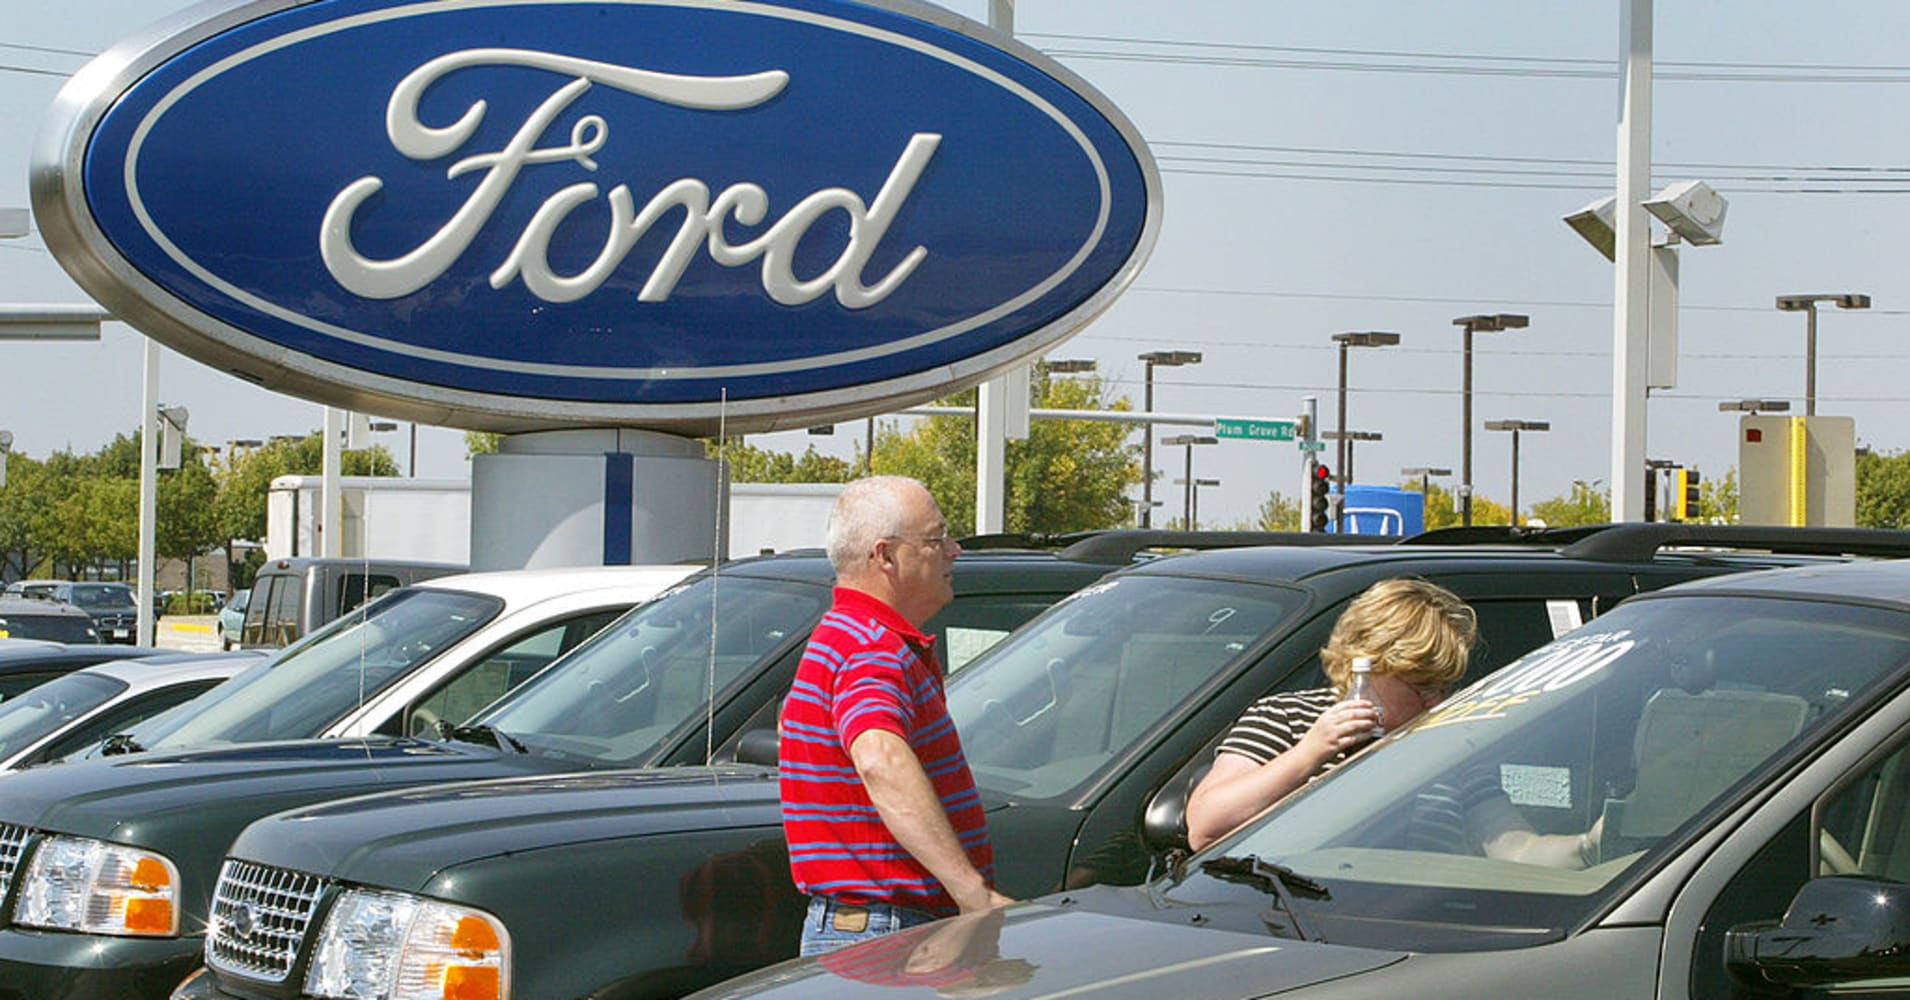 Ford sales fall 1.6% due to unpopular cars, but truck, vans and SUVs gain